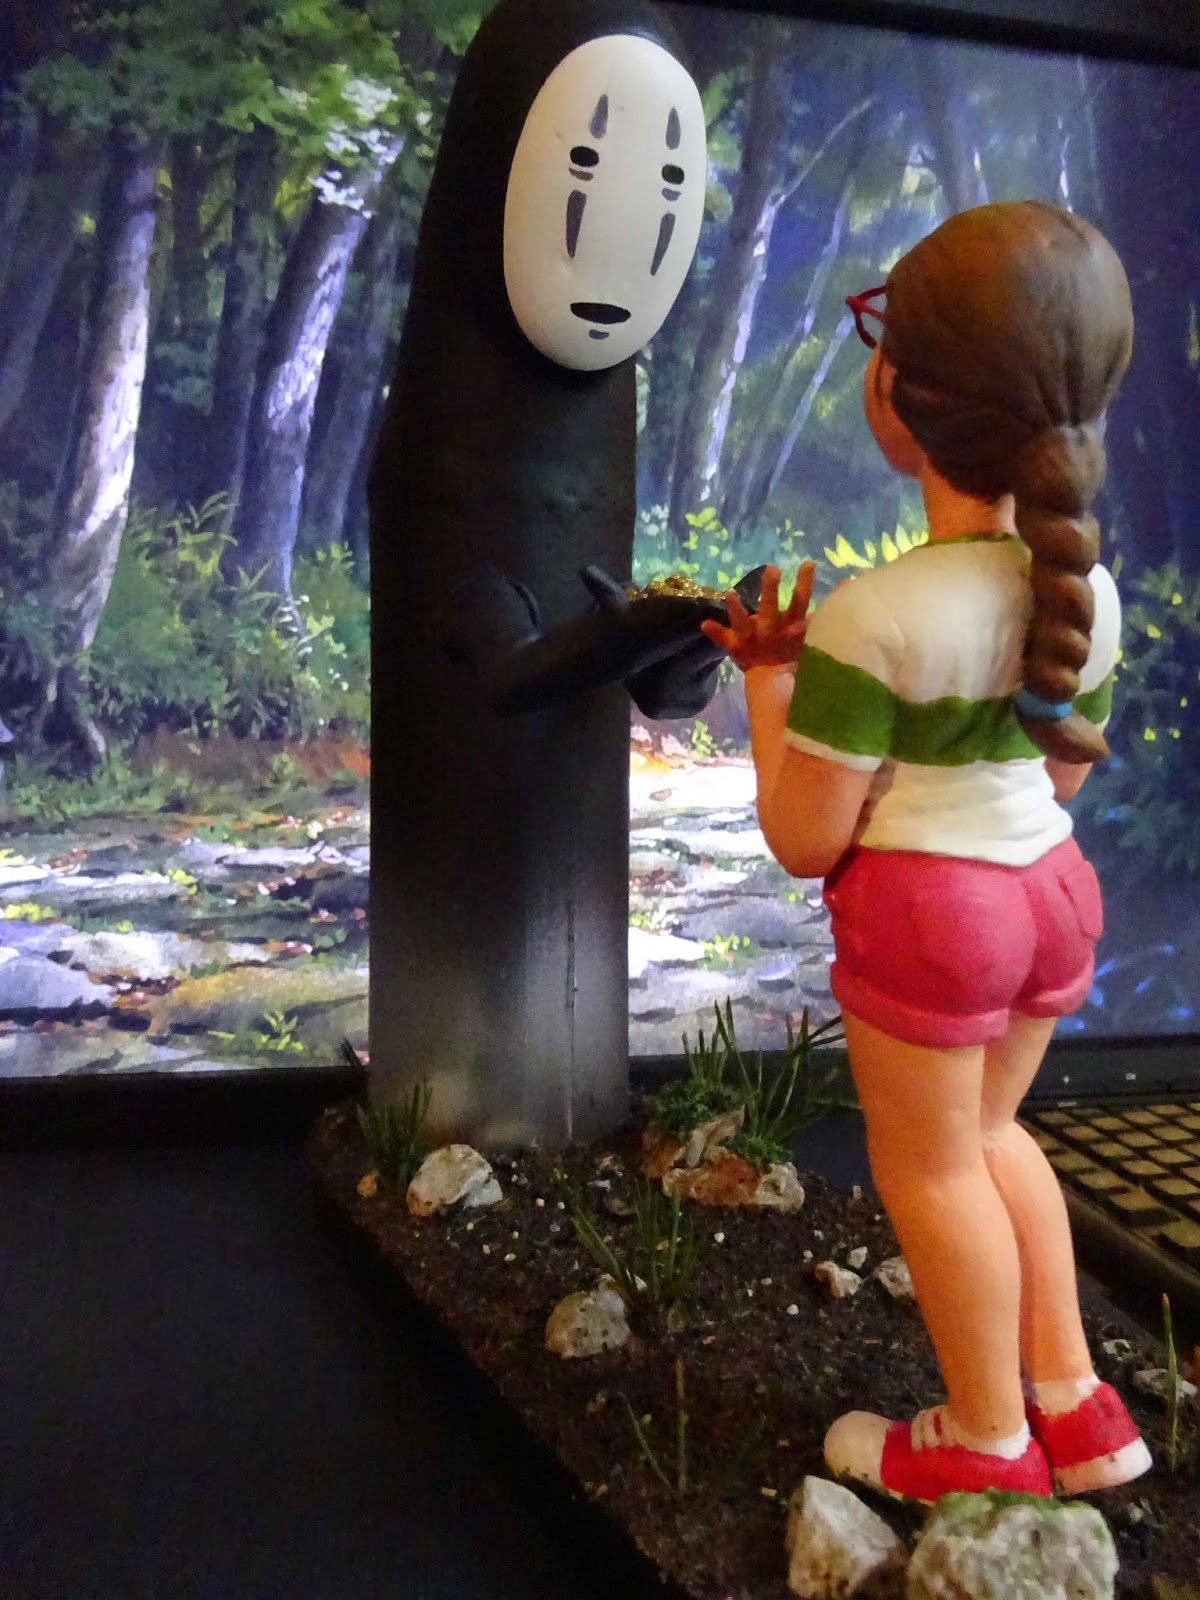 spirited away diorama noface